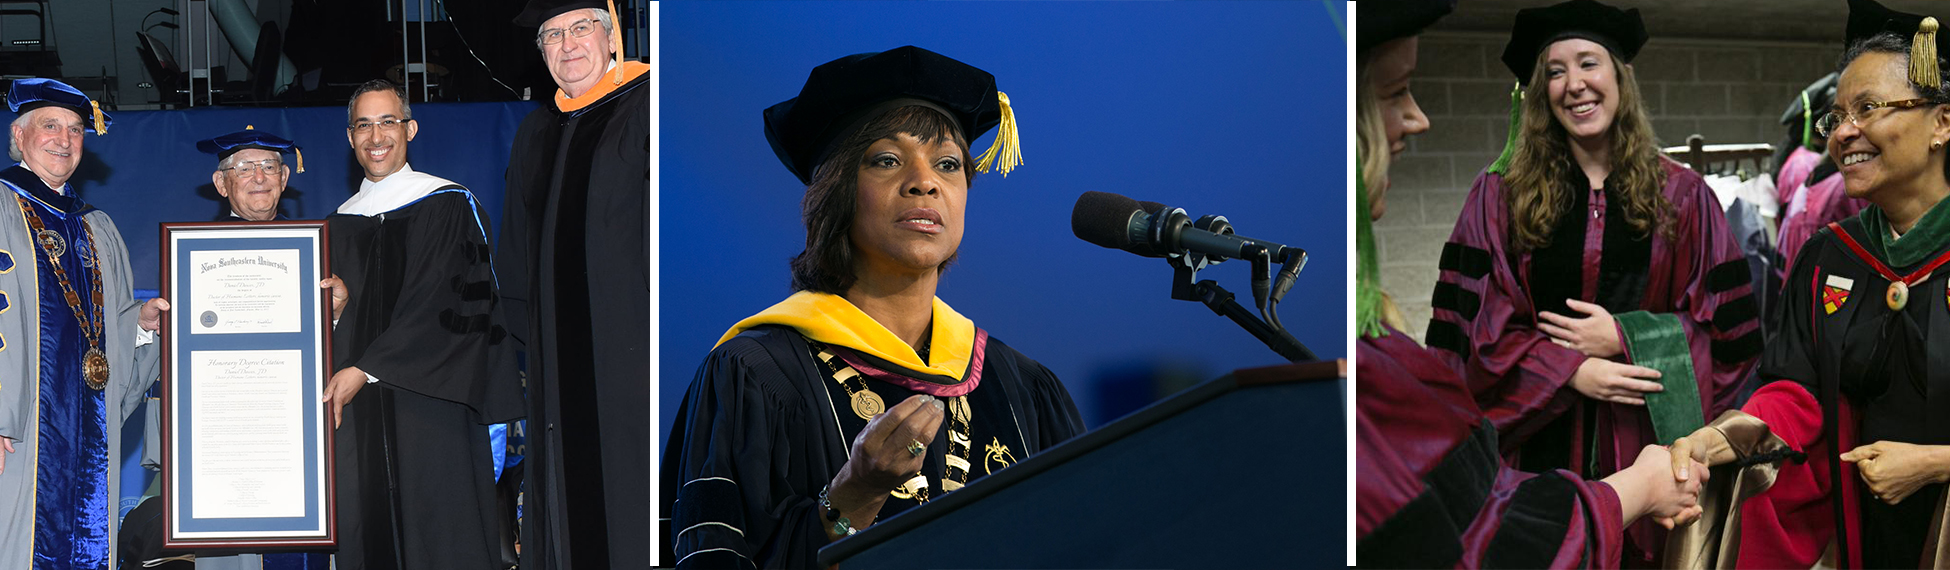 MSM Leaders Highly Sought After for Commencement Addresses, Honorary Degrees